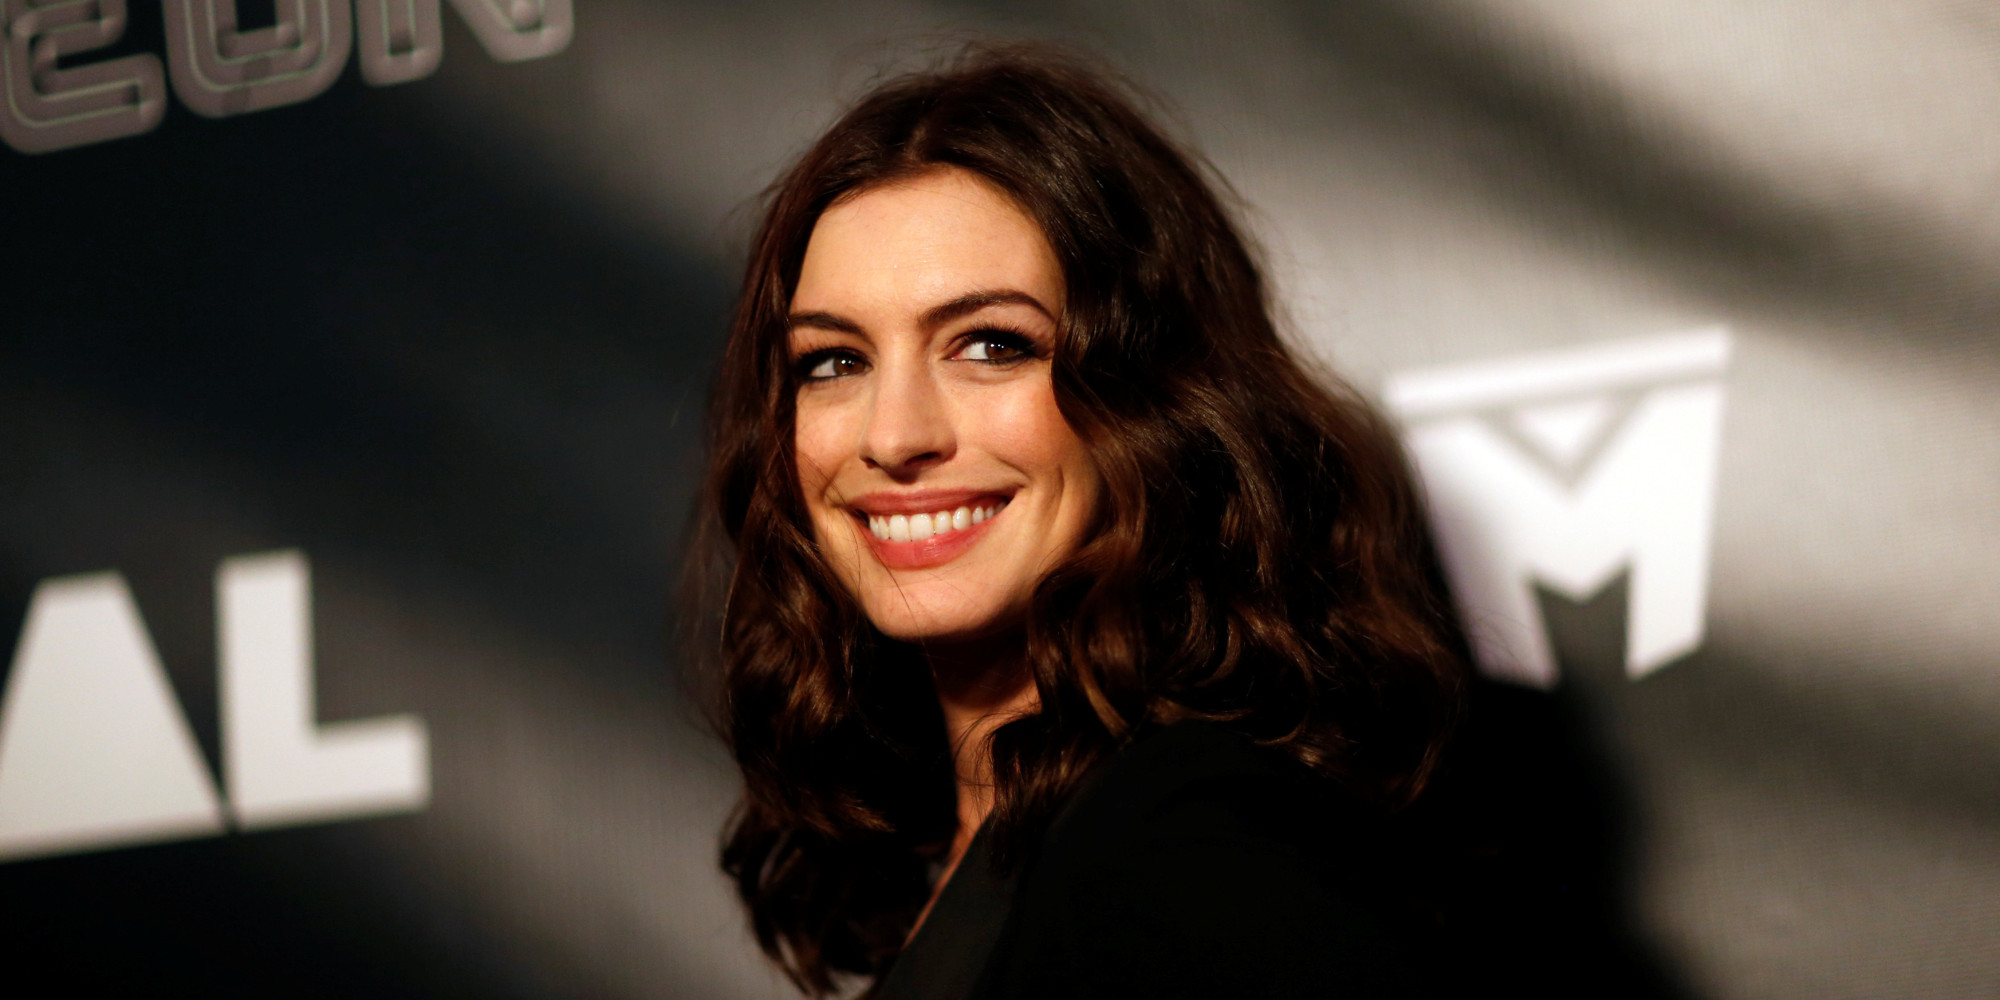 Why Anne Hathaway Won't Share Any More Photos Of Her Son Anne Hathaway Facebook